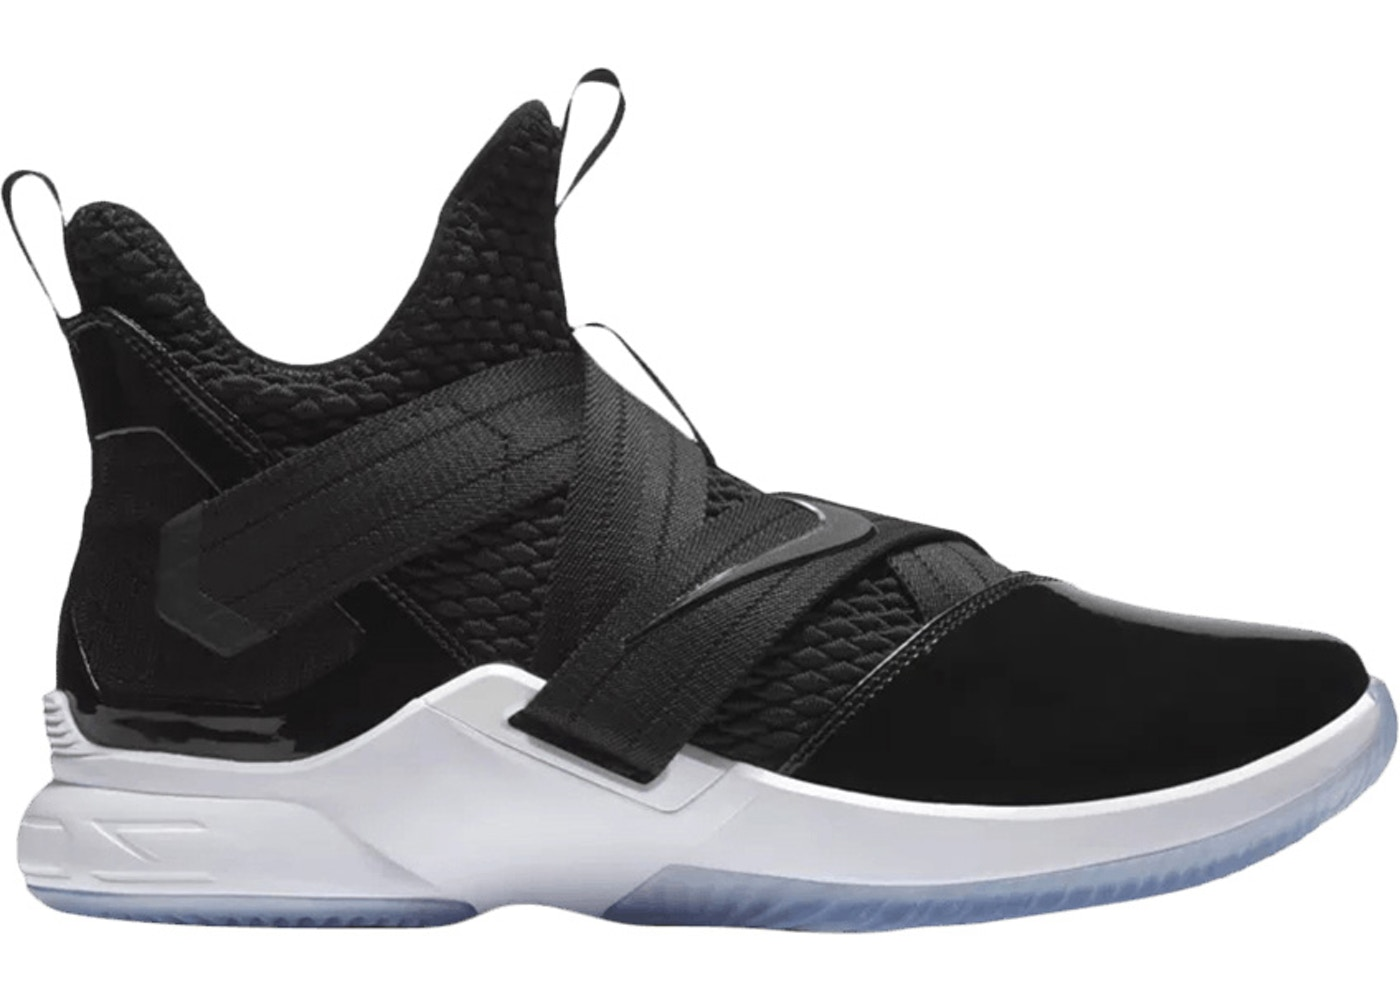 big sale 2149e de61c Nike LeBron Soldier 12 SFG Black